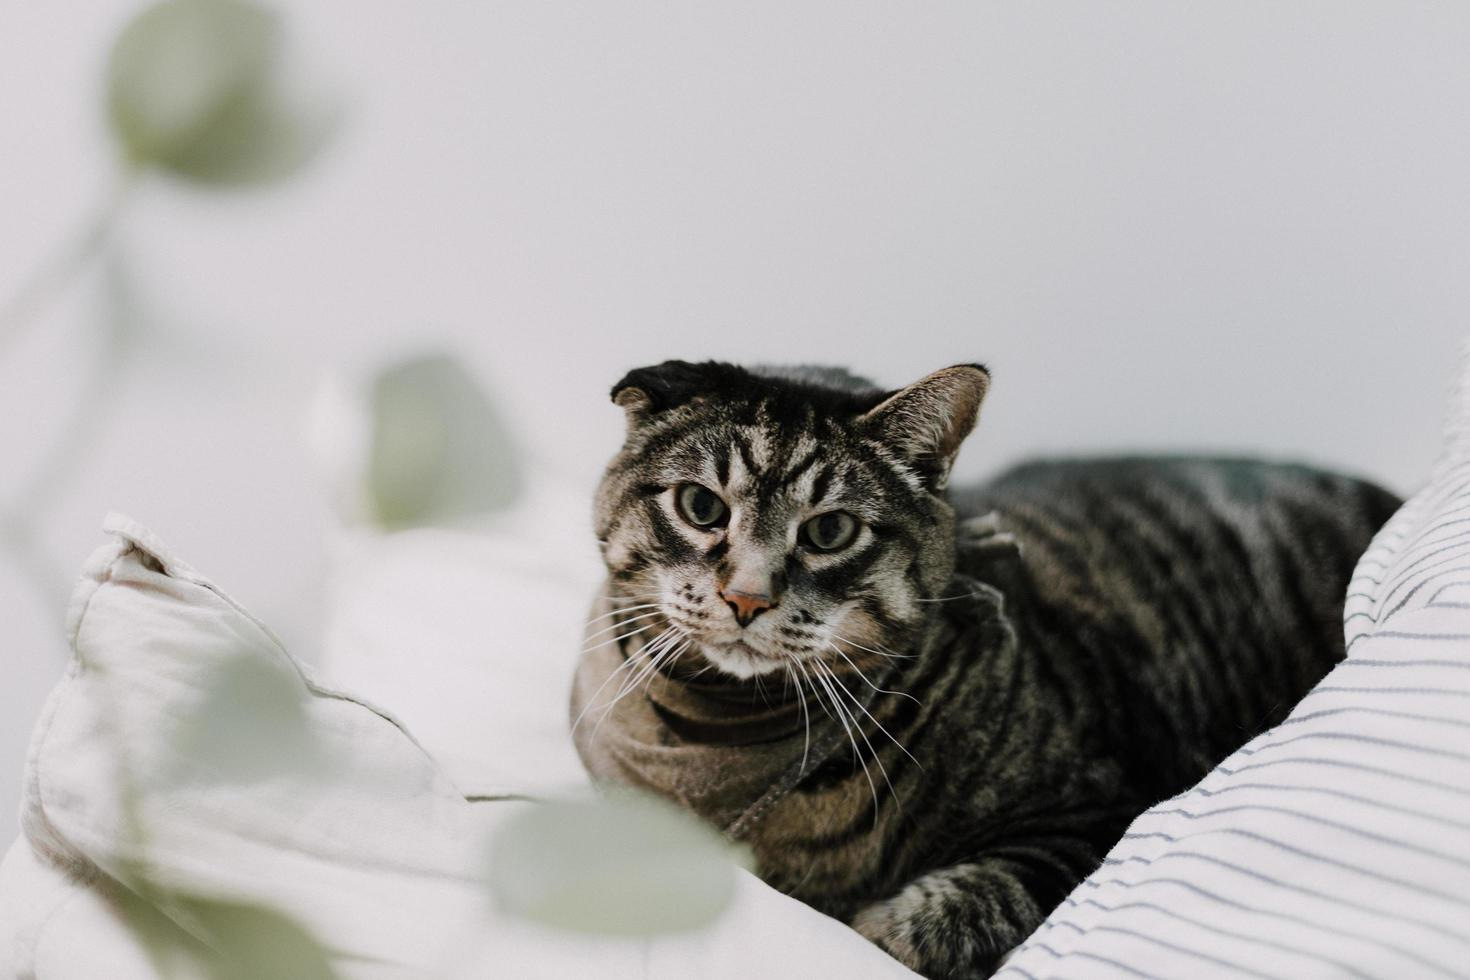 Brown tabby cat on bedding photo